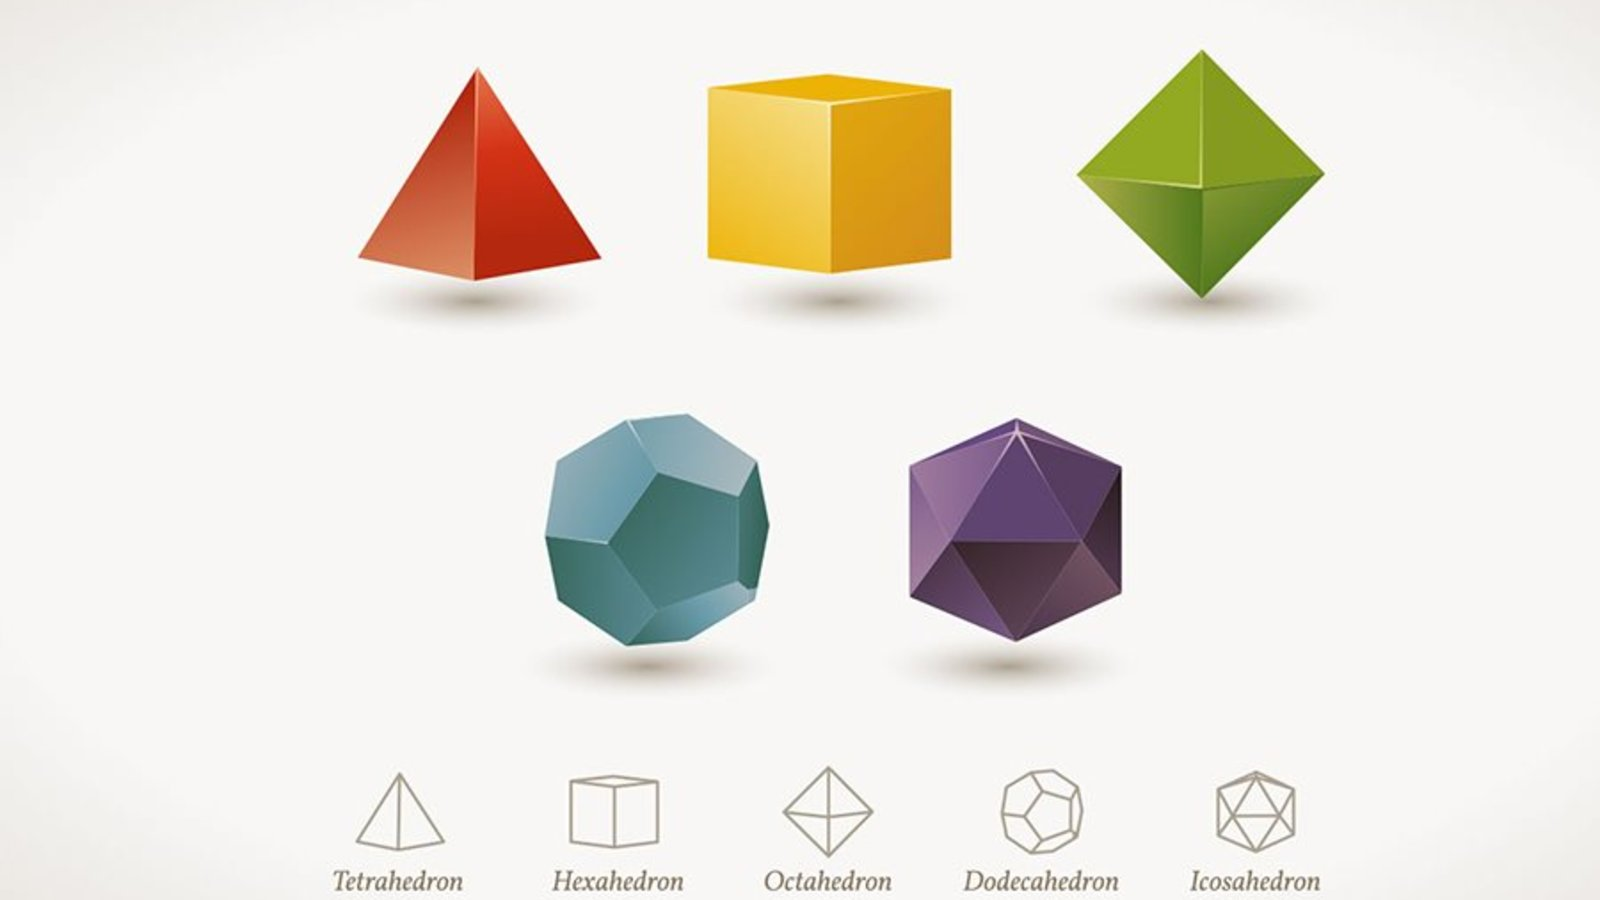 Tilings, Platonic Solids, and Theorems